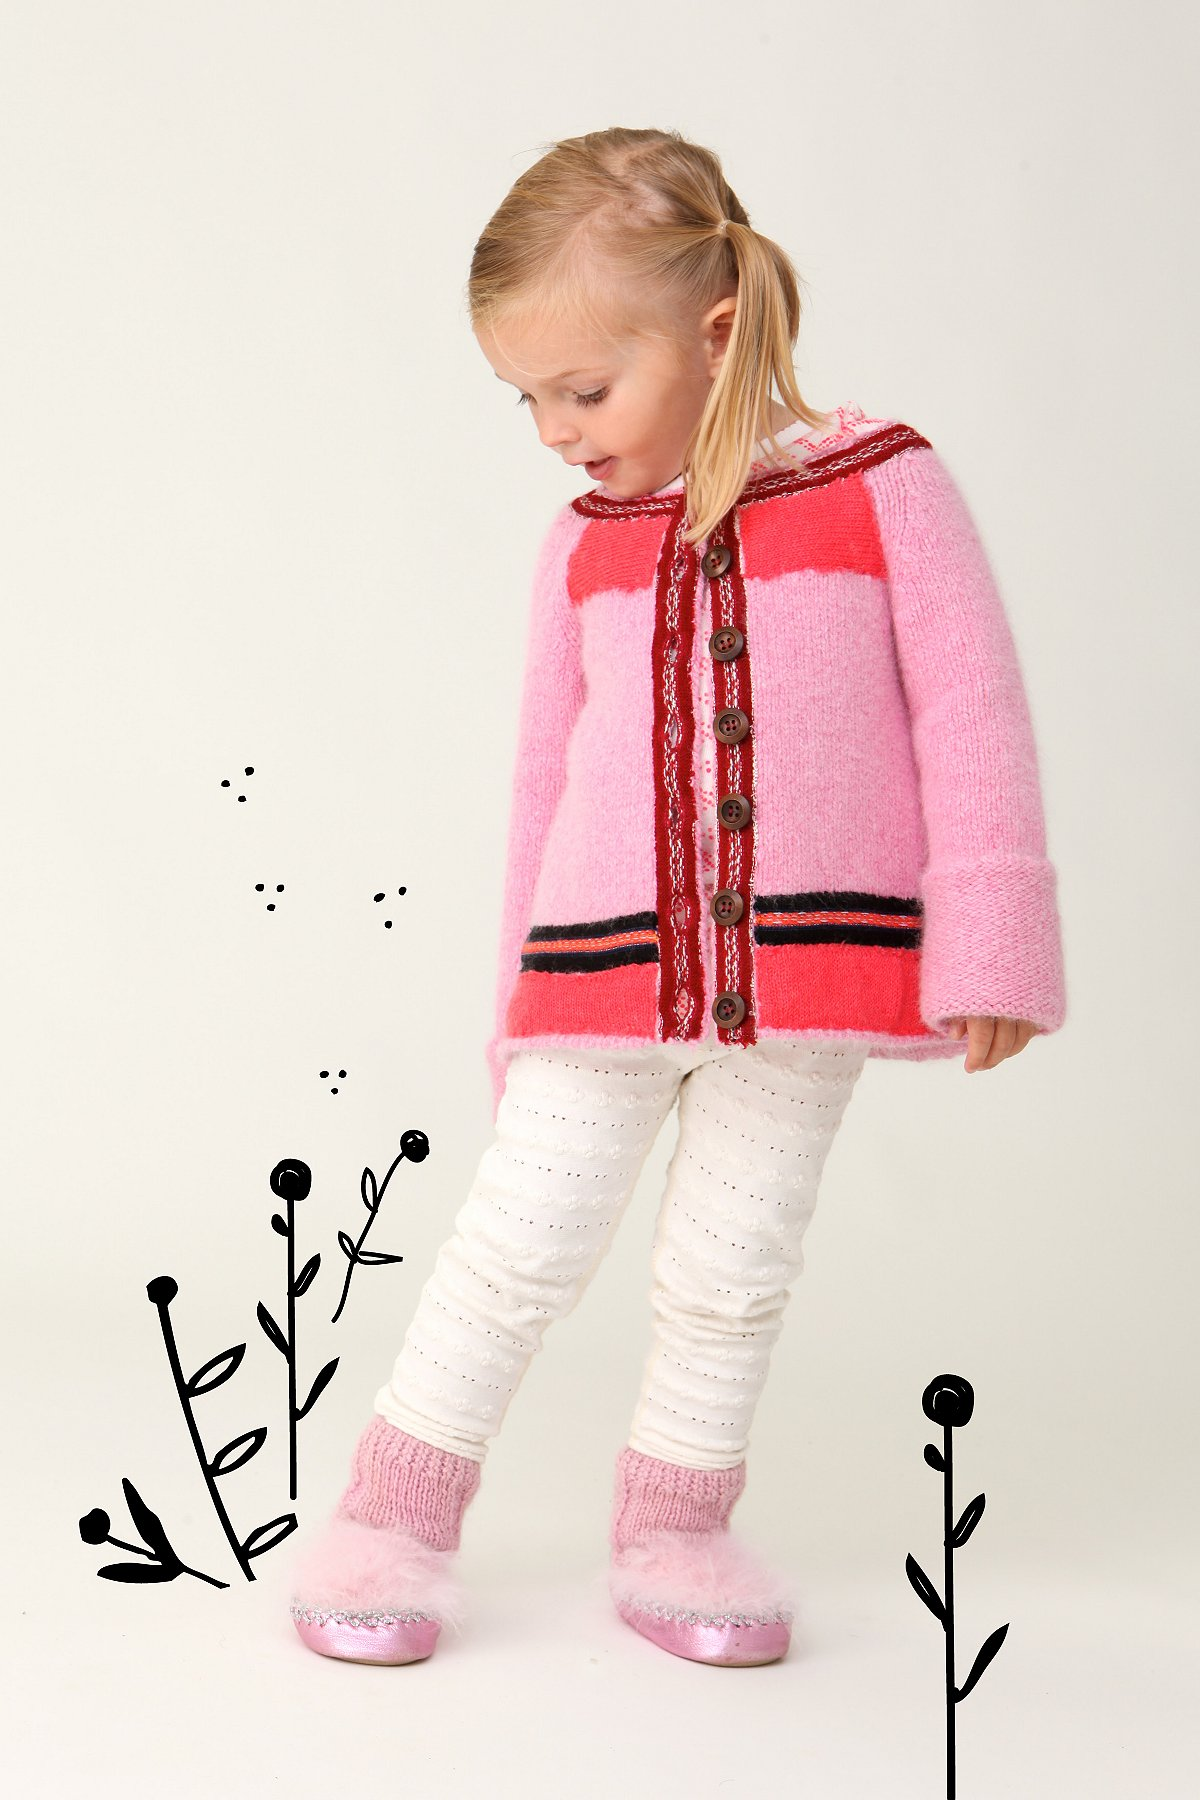 Wee People Hansel & Gretel Cardi